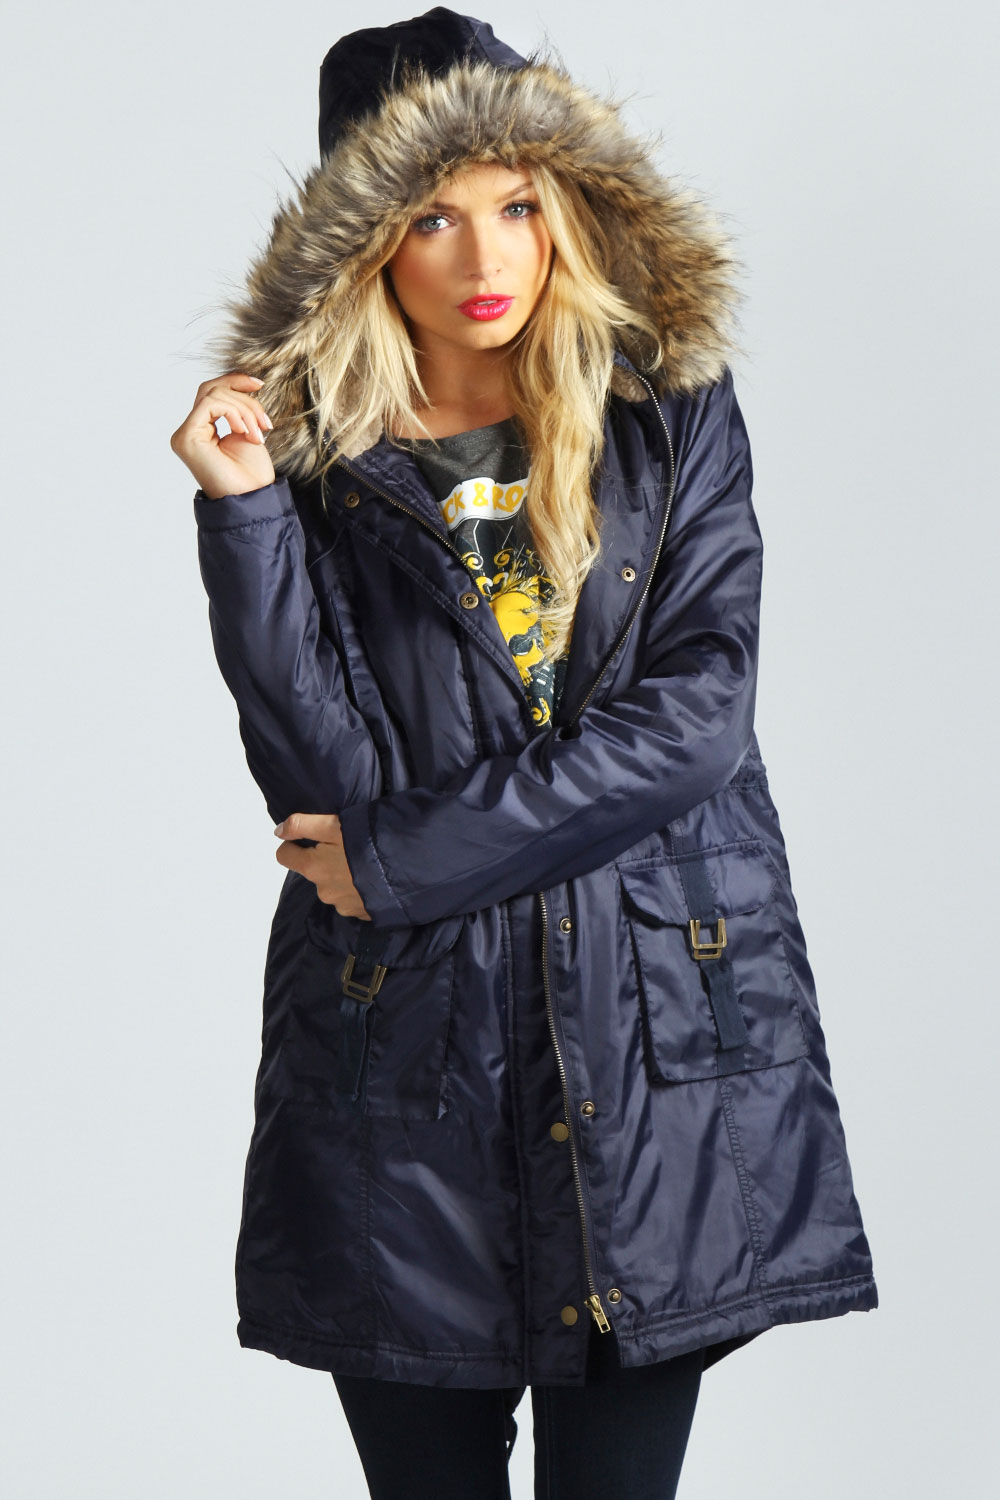 Old Navy Coats Old Navy coats feature the timeless classics and trendy styles you'll love. Everyone in the family can wrap up in a new coat at an affordable price.